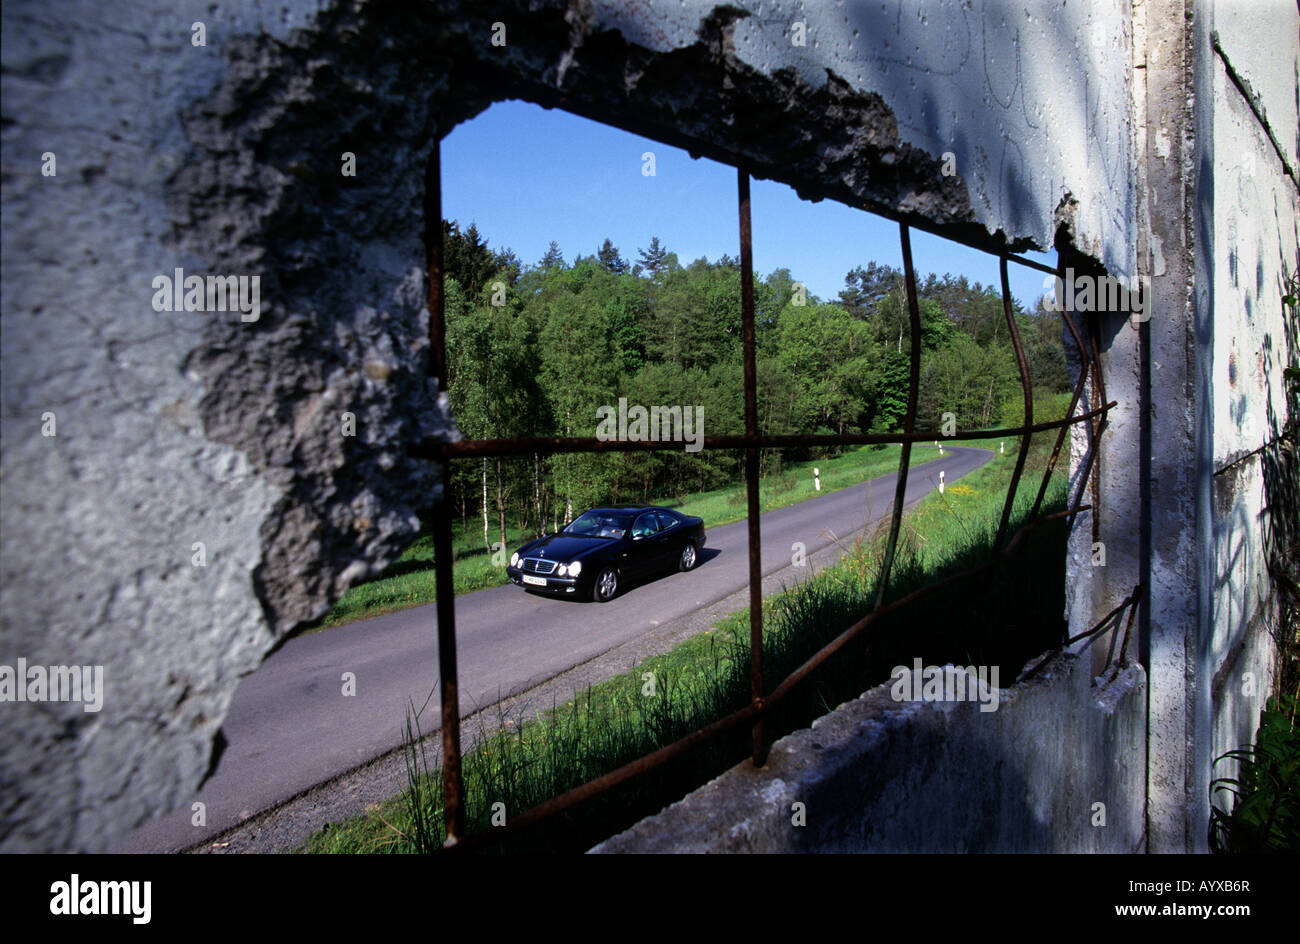 GERMANY THE WALL AT GORSDORF IN THE FORMER DDR WITH A MERCEDES CAR  2008 - Stock Image